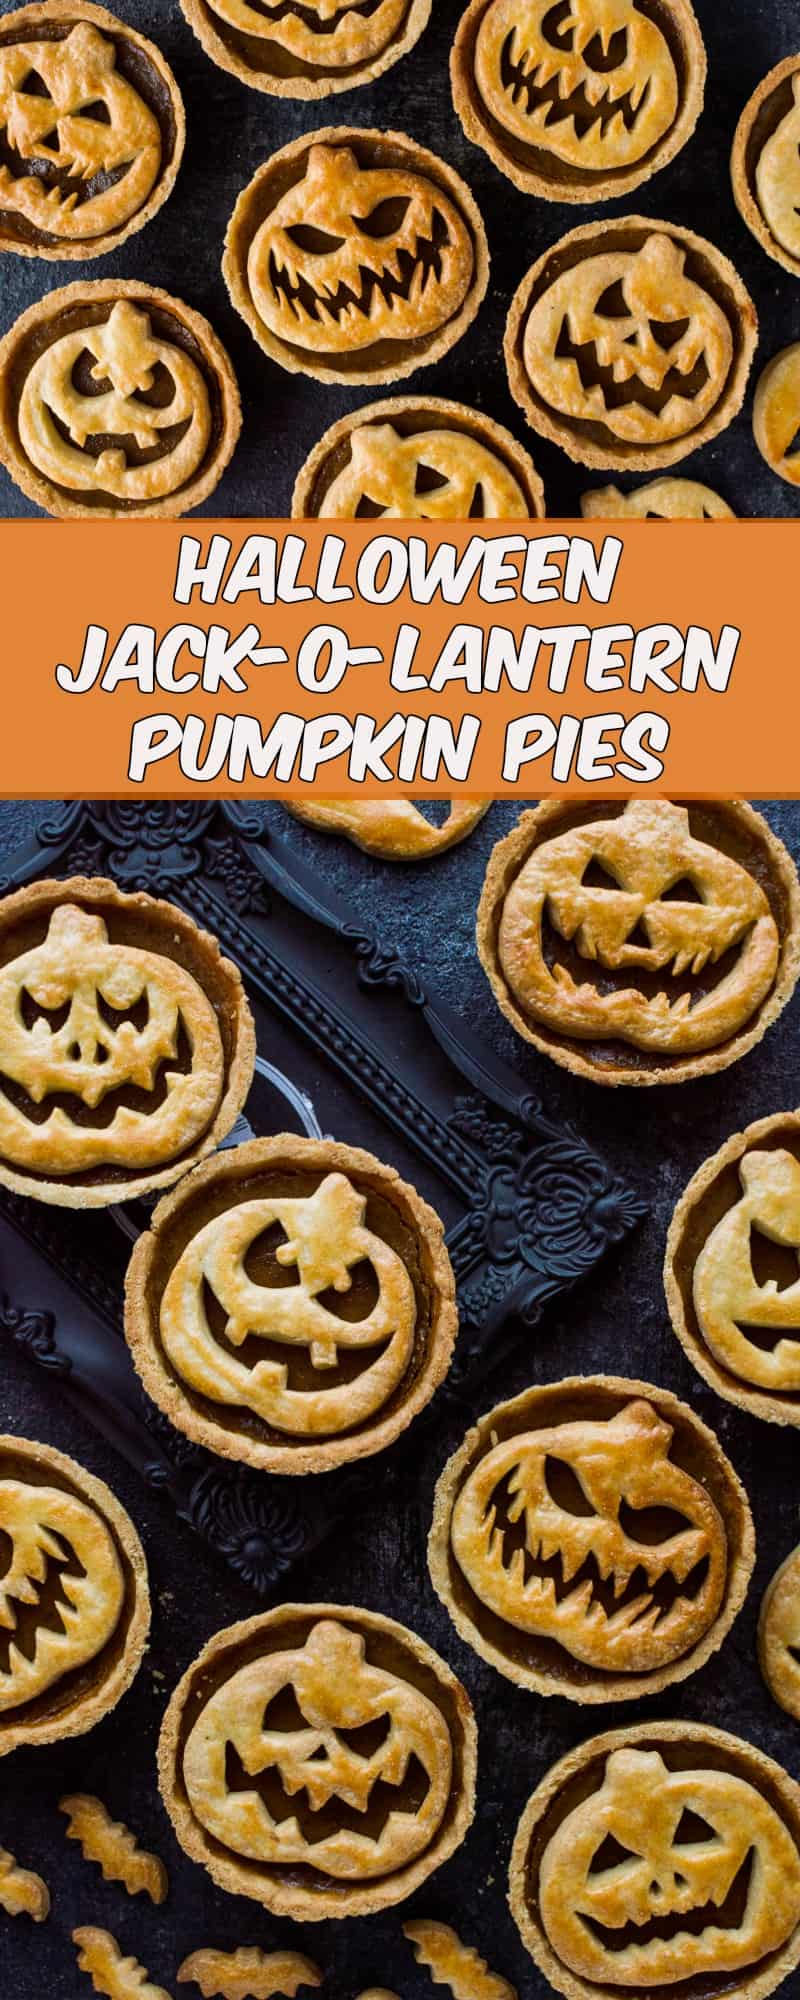 Halloween jack o lantern pumpkin pies - impress your guests with these spooky treats!